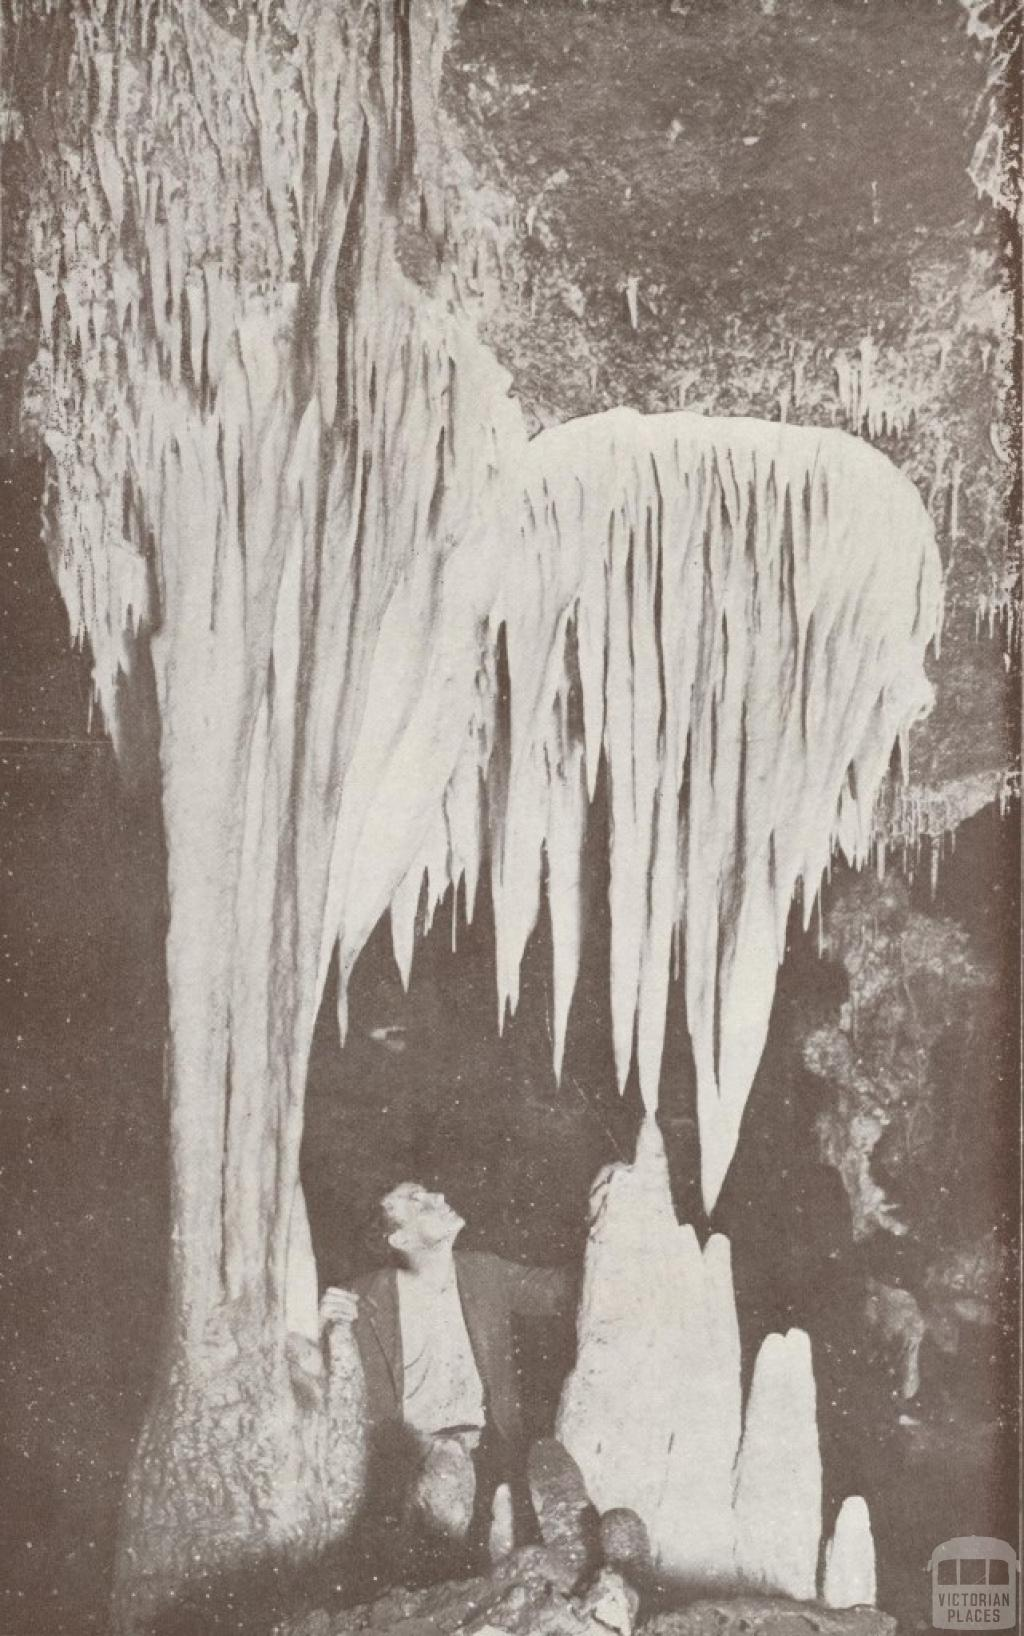 Giant White Stalactites and Stalagmites in the Fairy Cave, Buchan, 1934